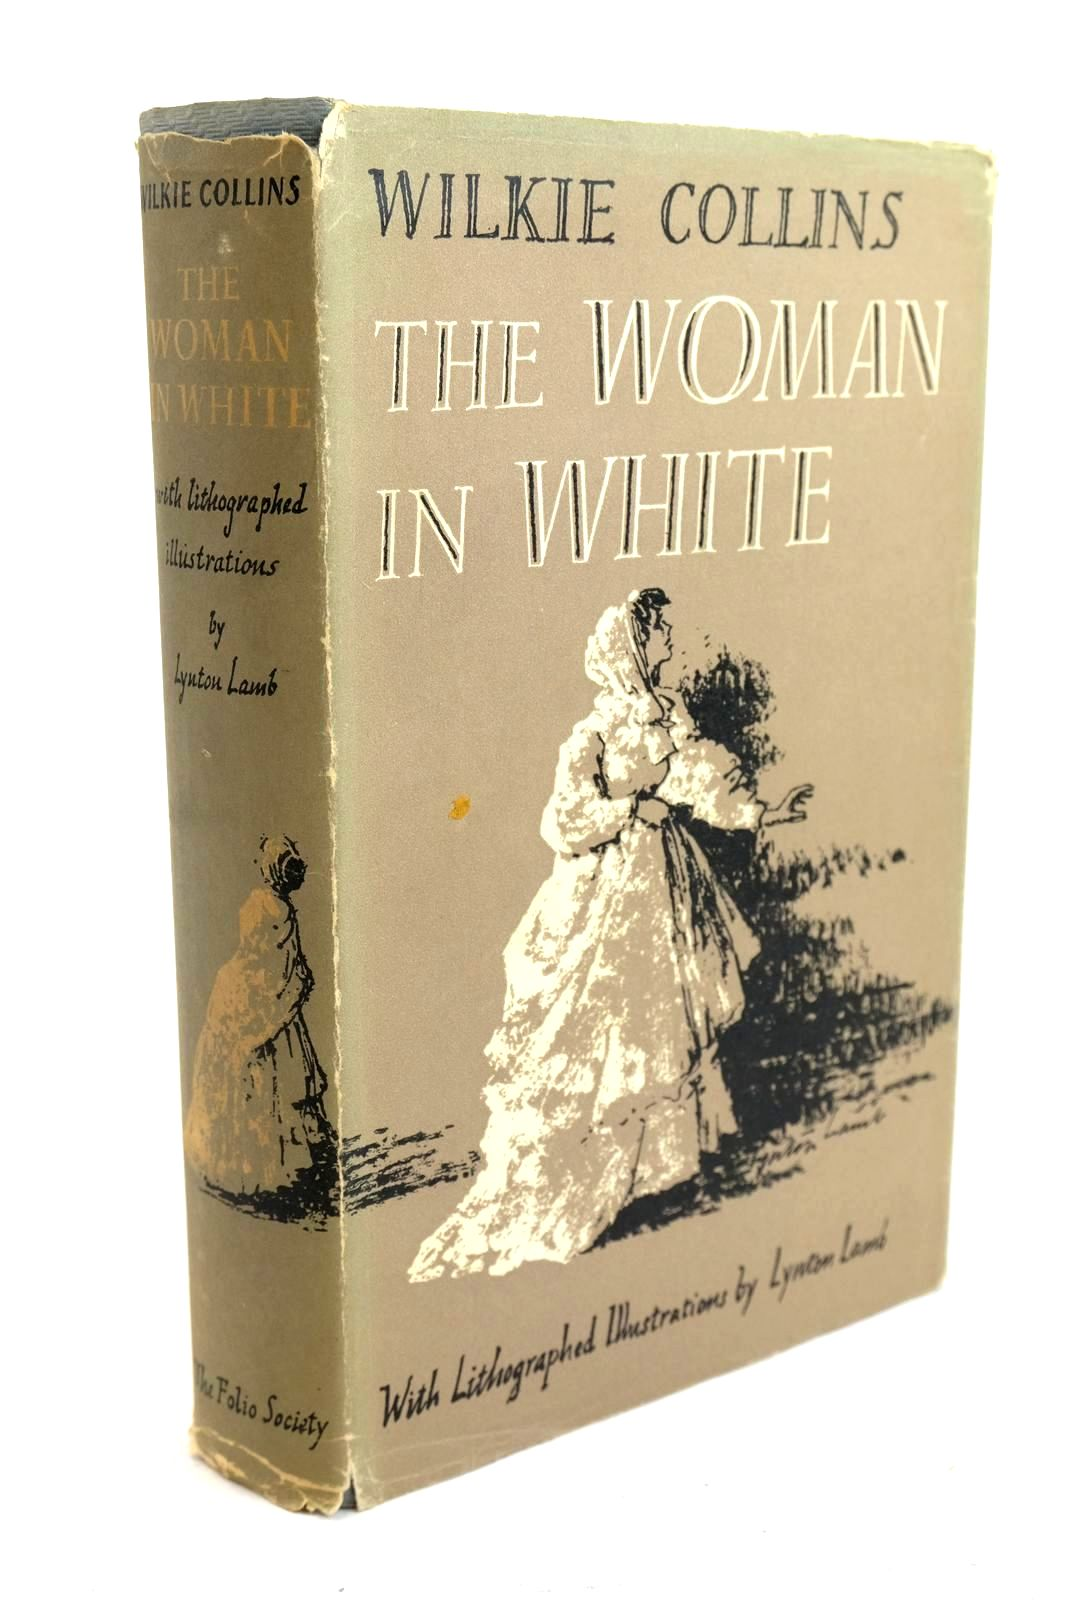 Photo of THE WOMAN IN WHITE written by Collins, Wilkie illustrated by Lamb, Lynton published by Folio Society (STOCK CODE: 1320585)  for sale by Stella & Rose's Books